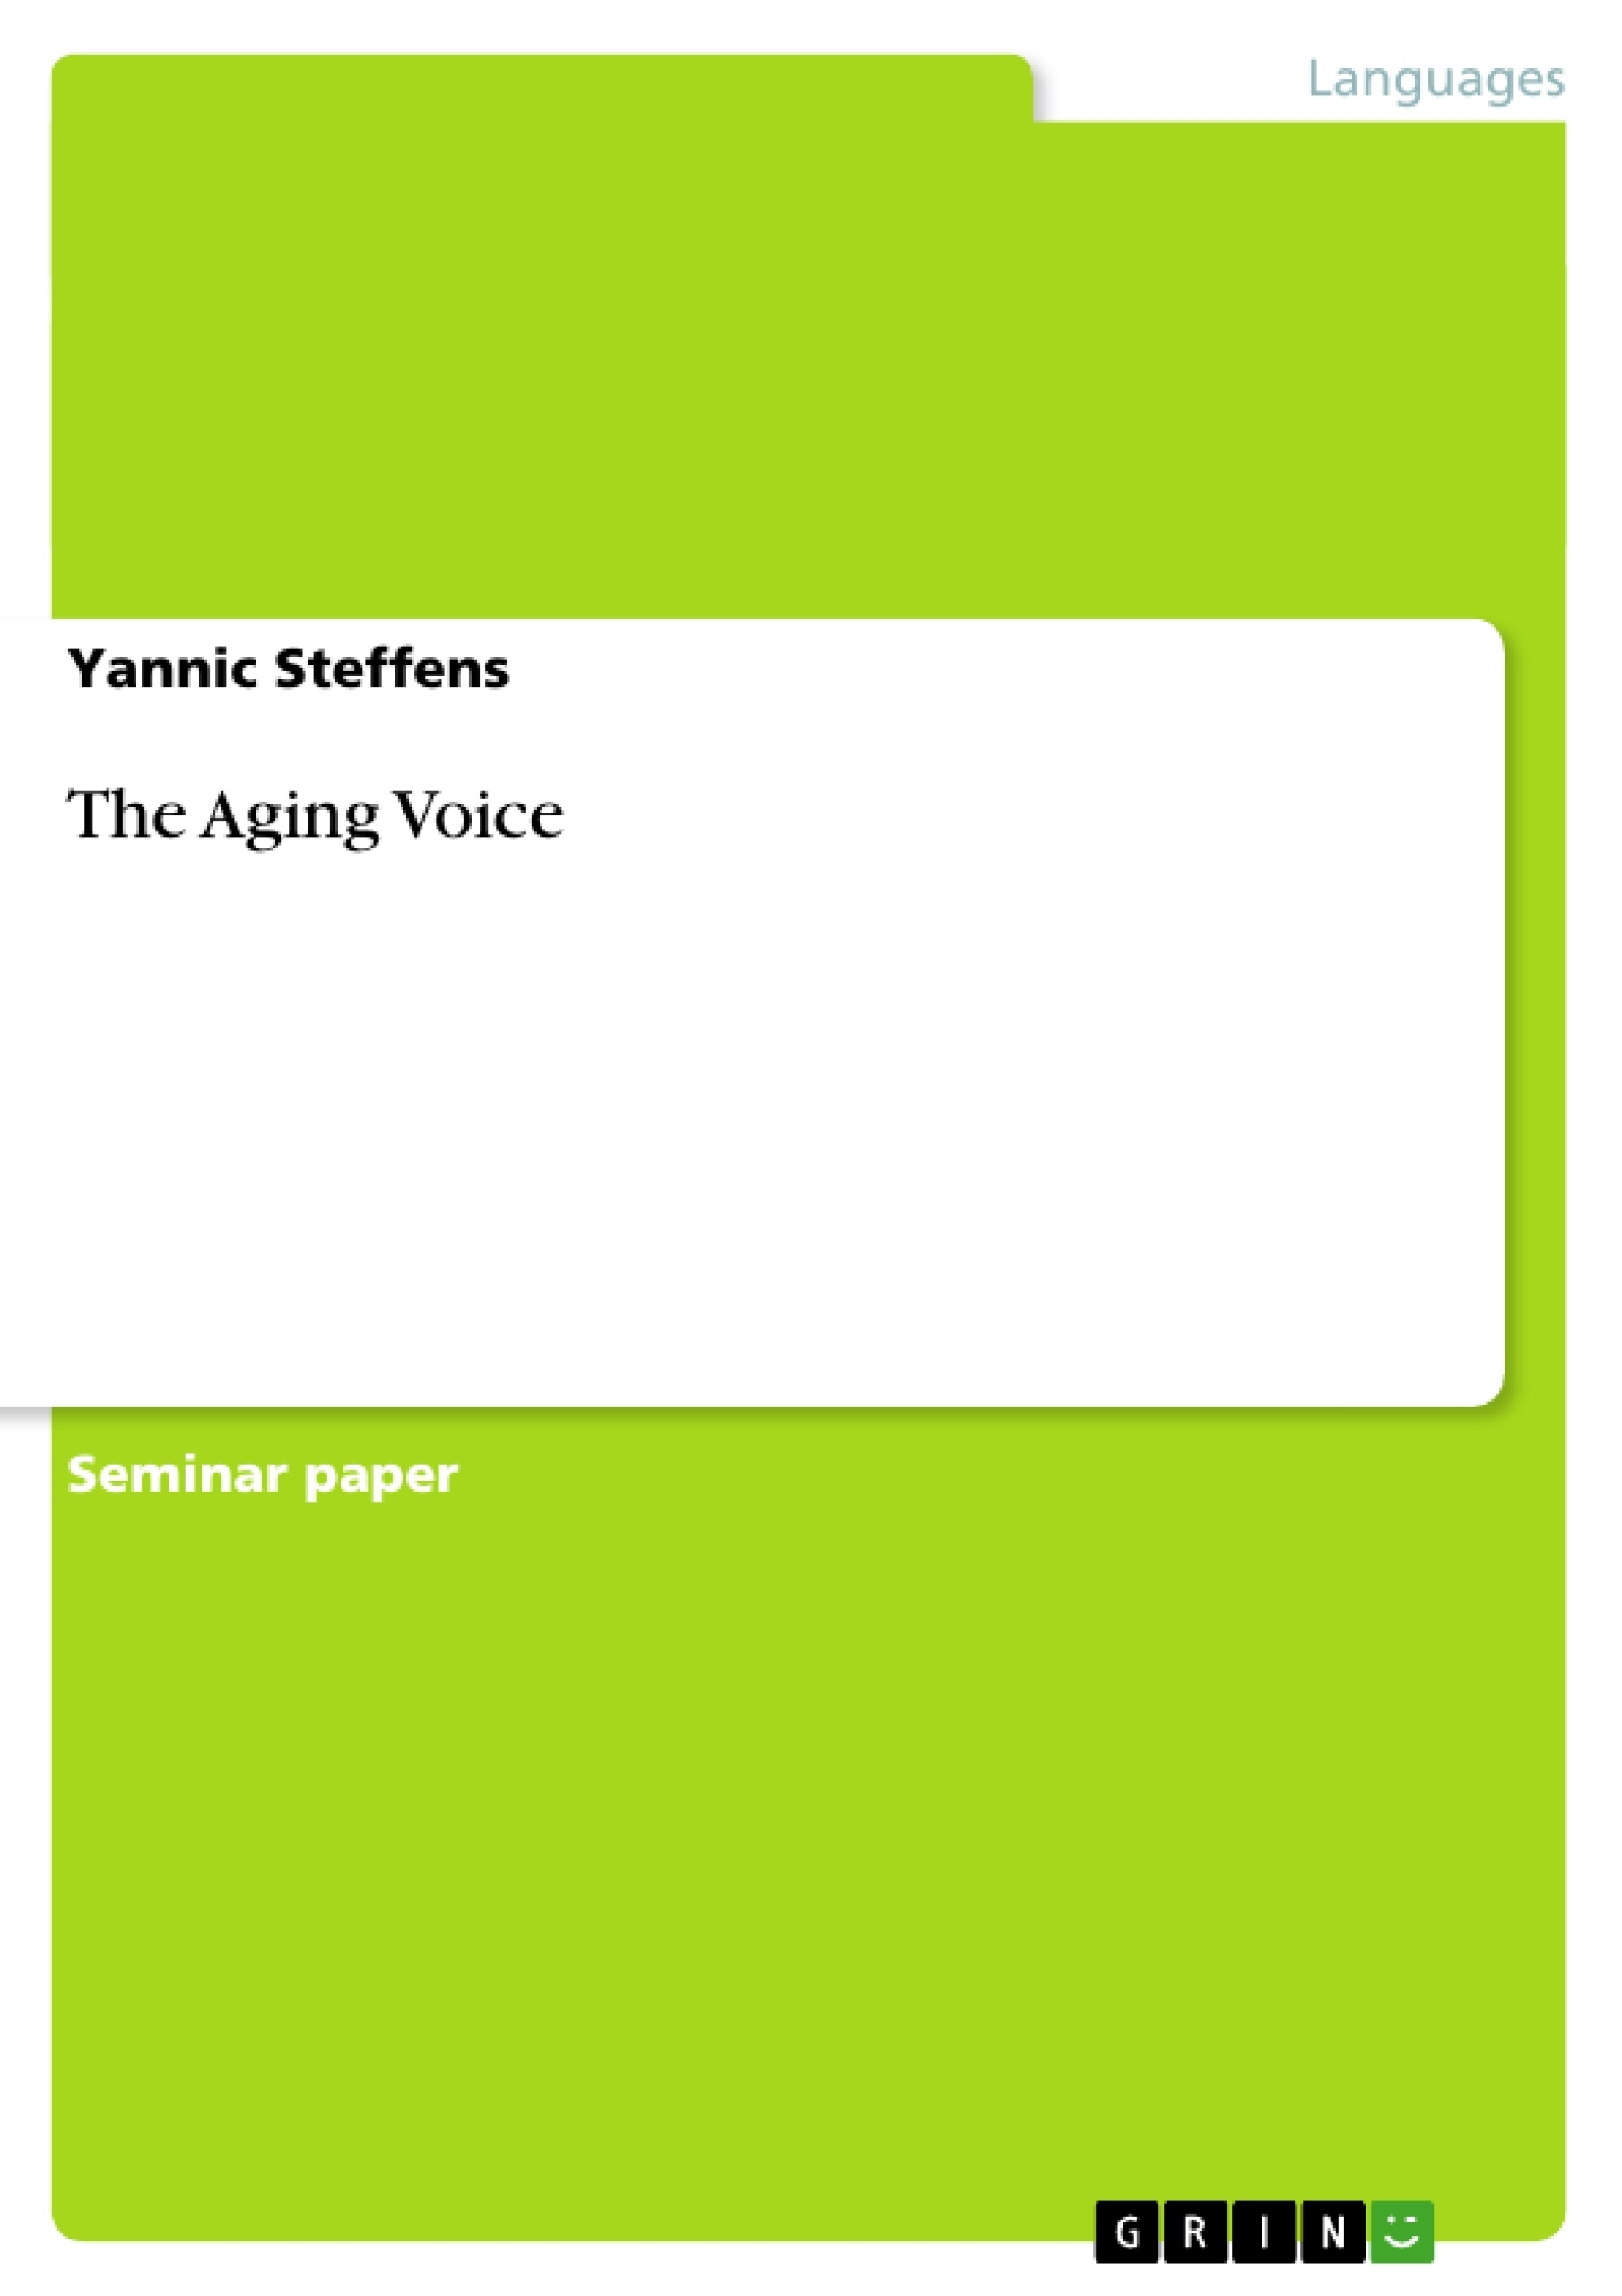 Title: The Aging Voice